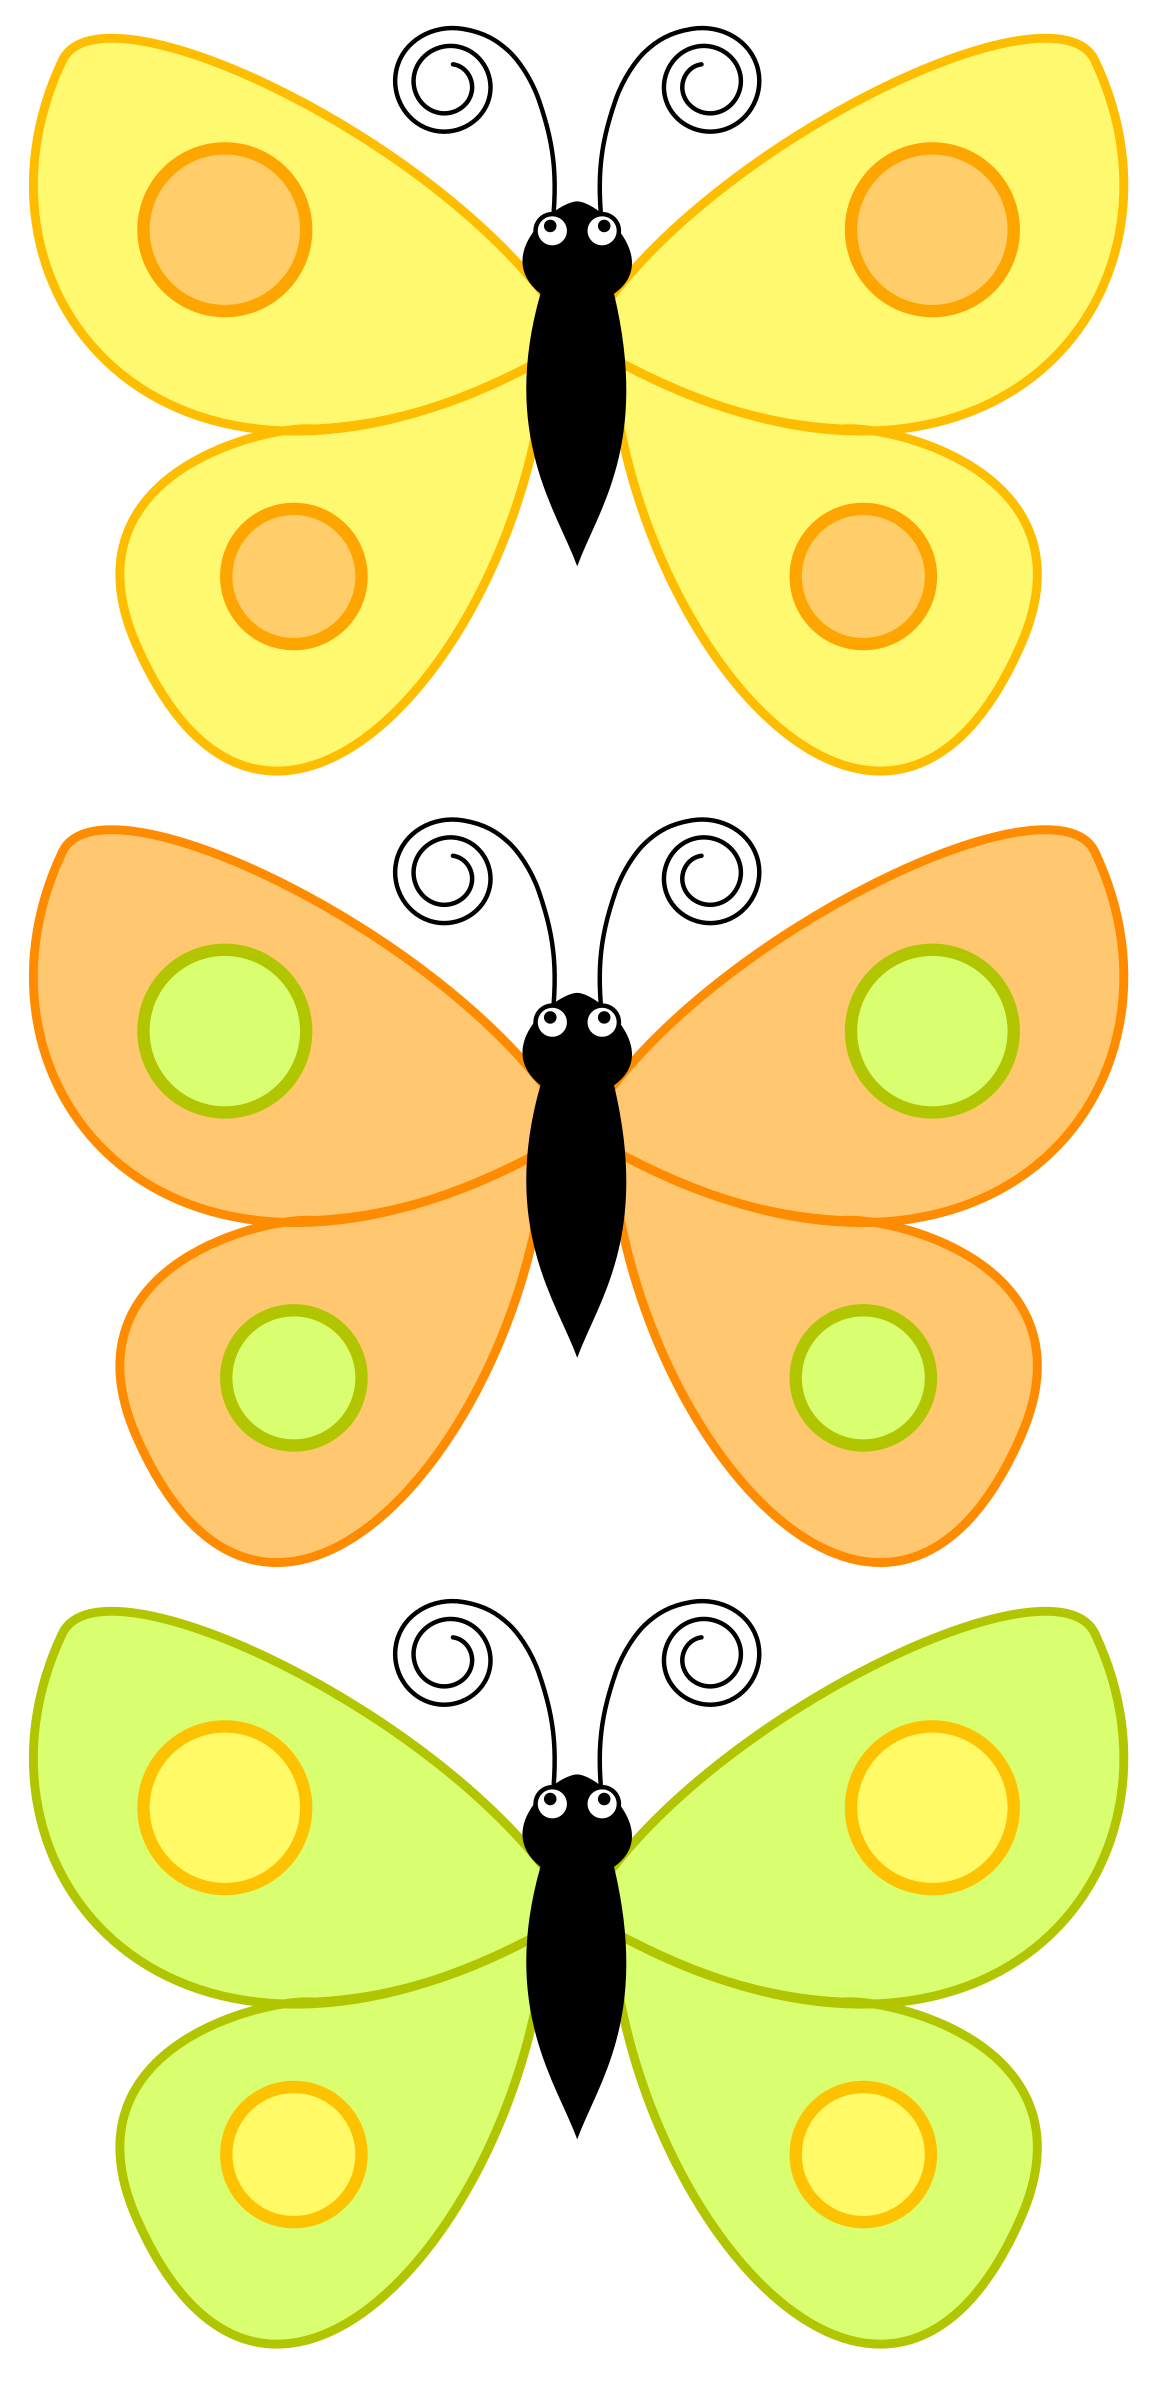 Cartoon dw big image. Circle clipart butterfly